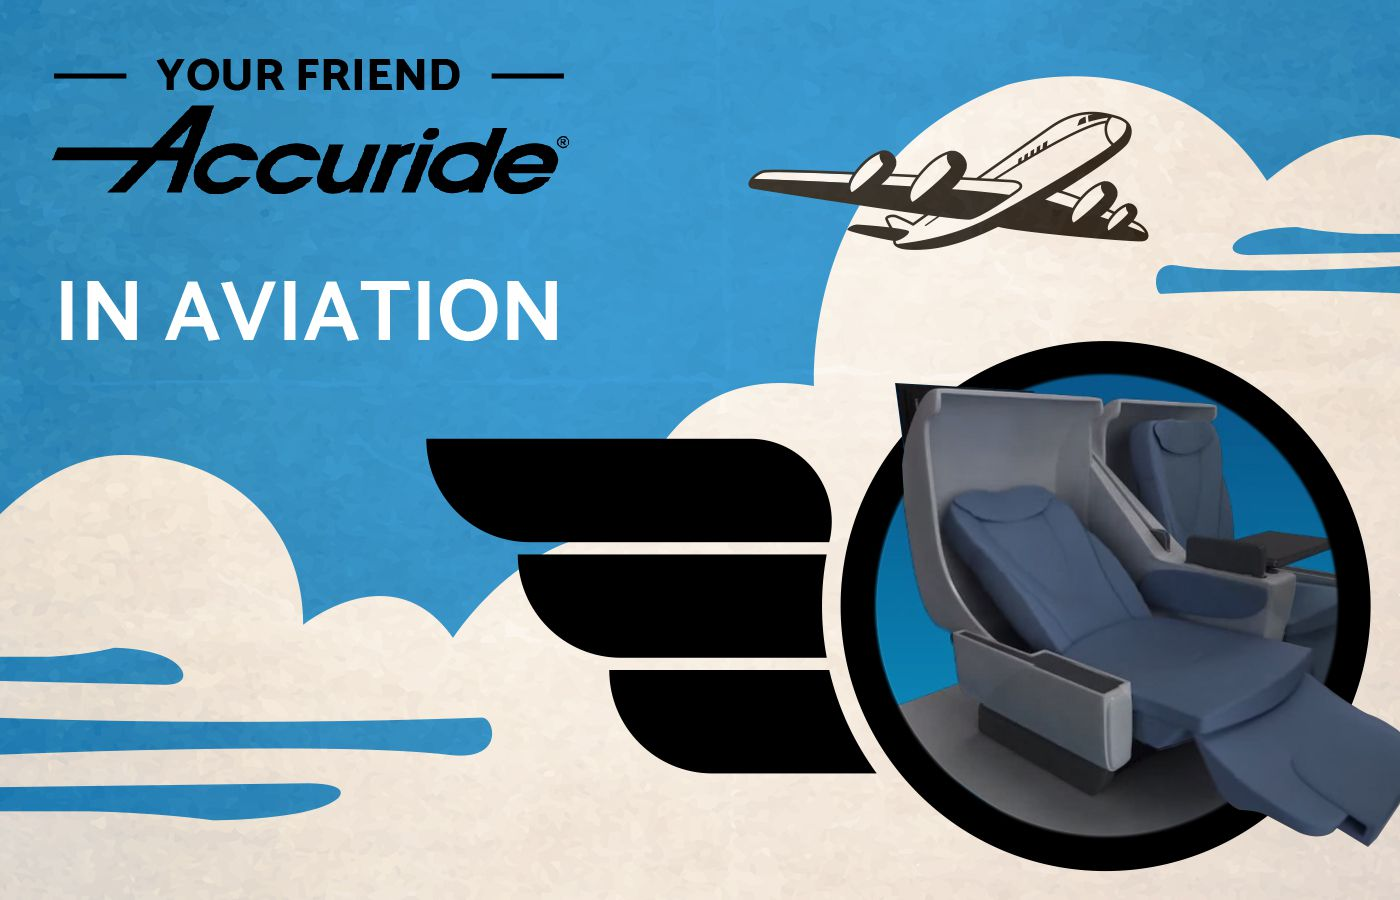 Accuride Aircraft solutions